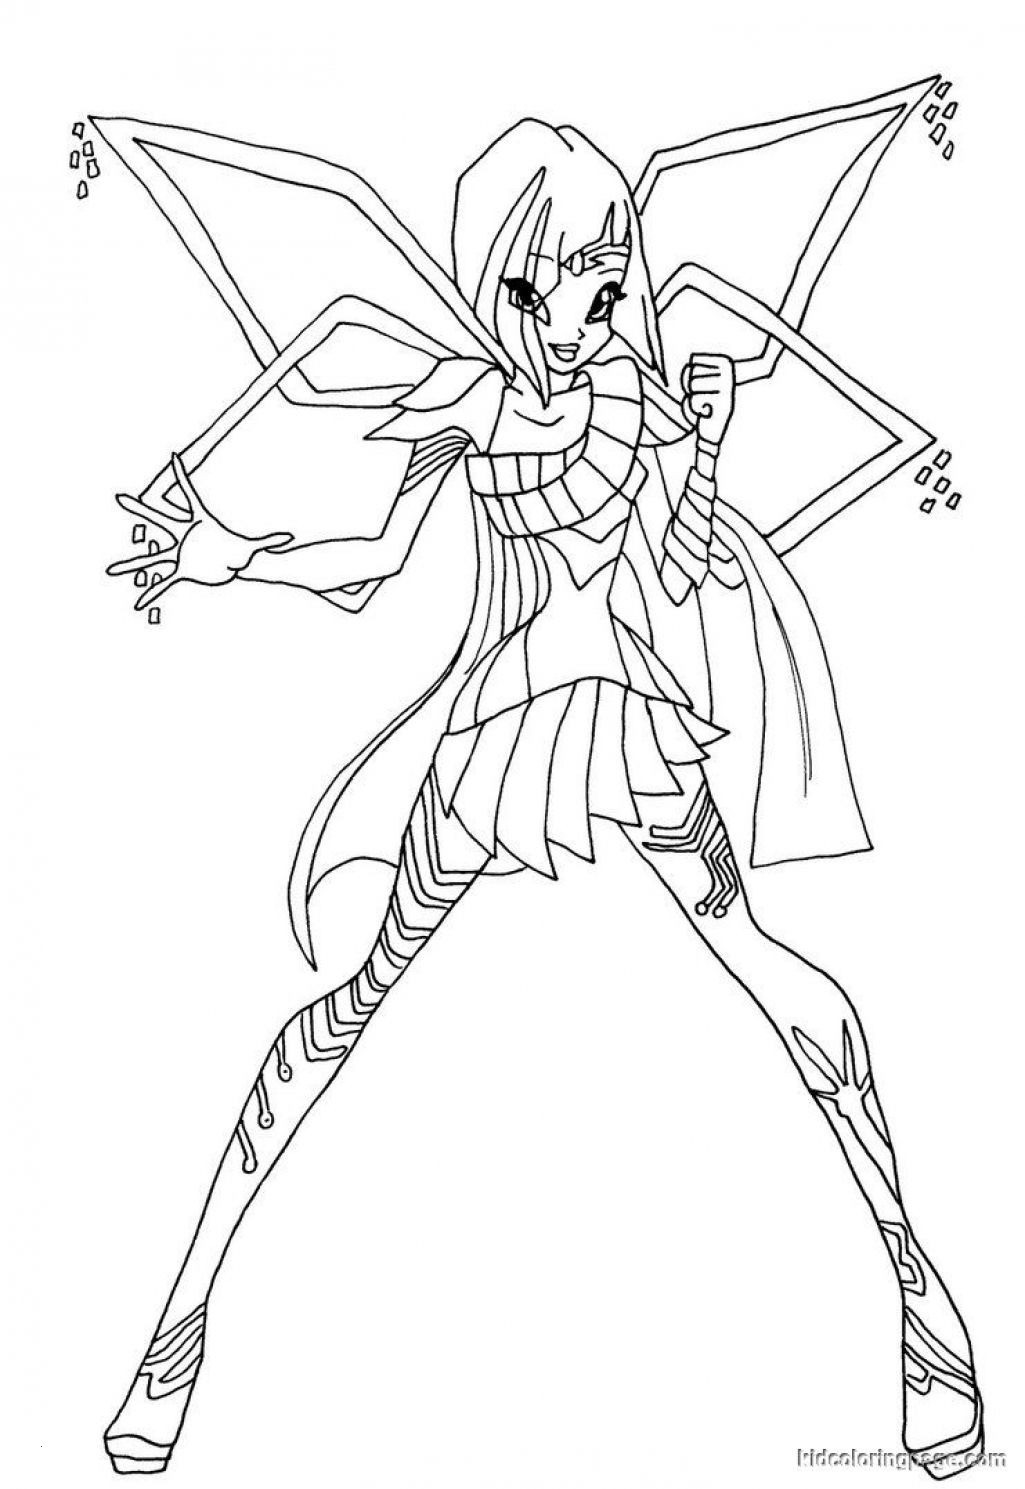 My Little Pony Equestria Girls Ausmalbilder Neu Winx Club Coloring Pages Google Search Coloring People Schön Stock